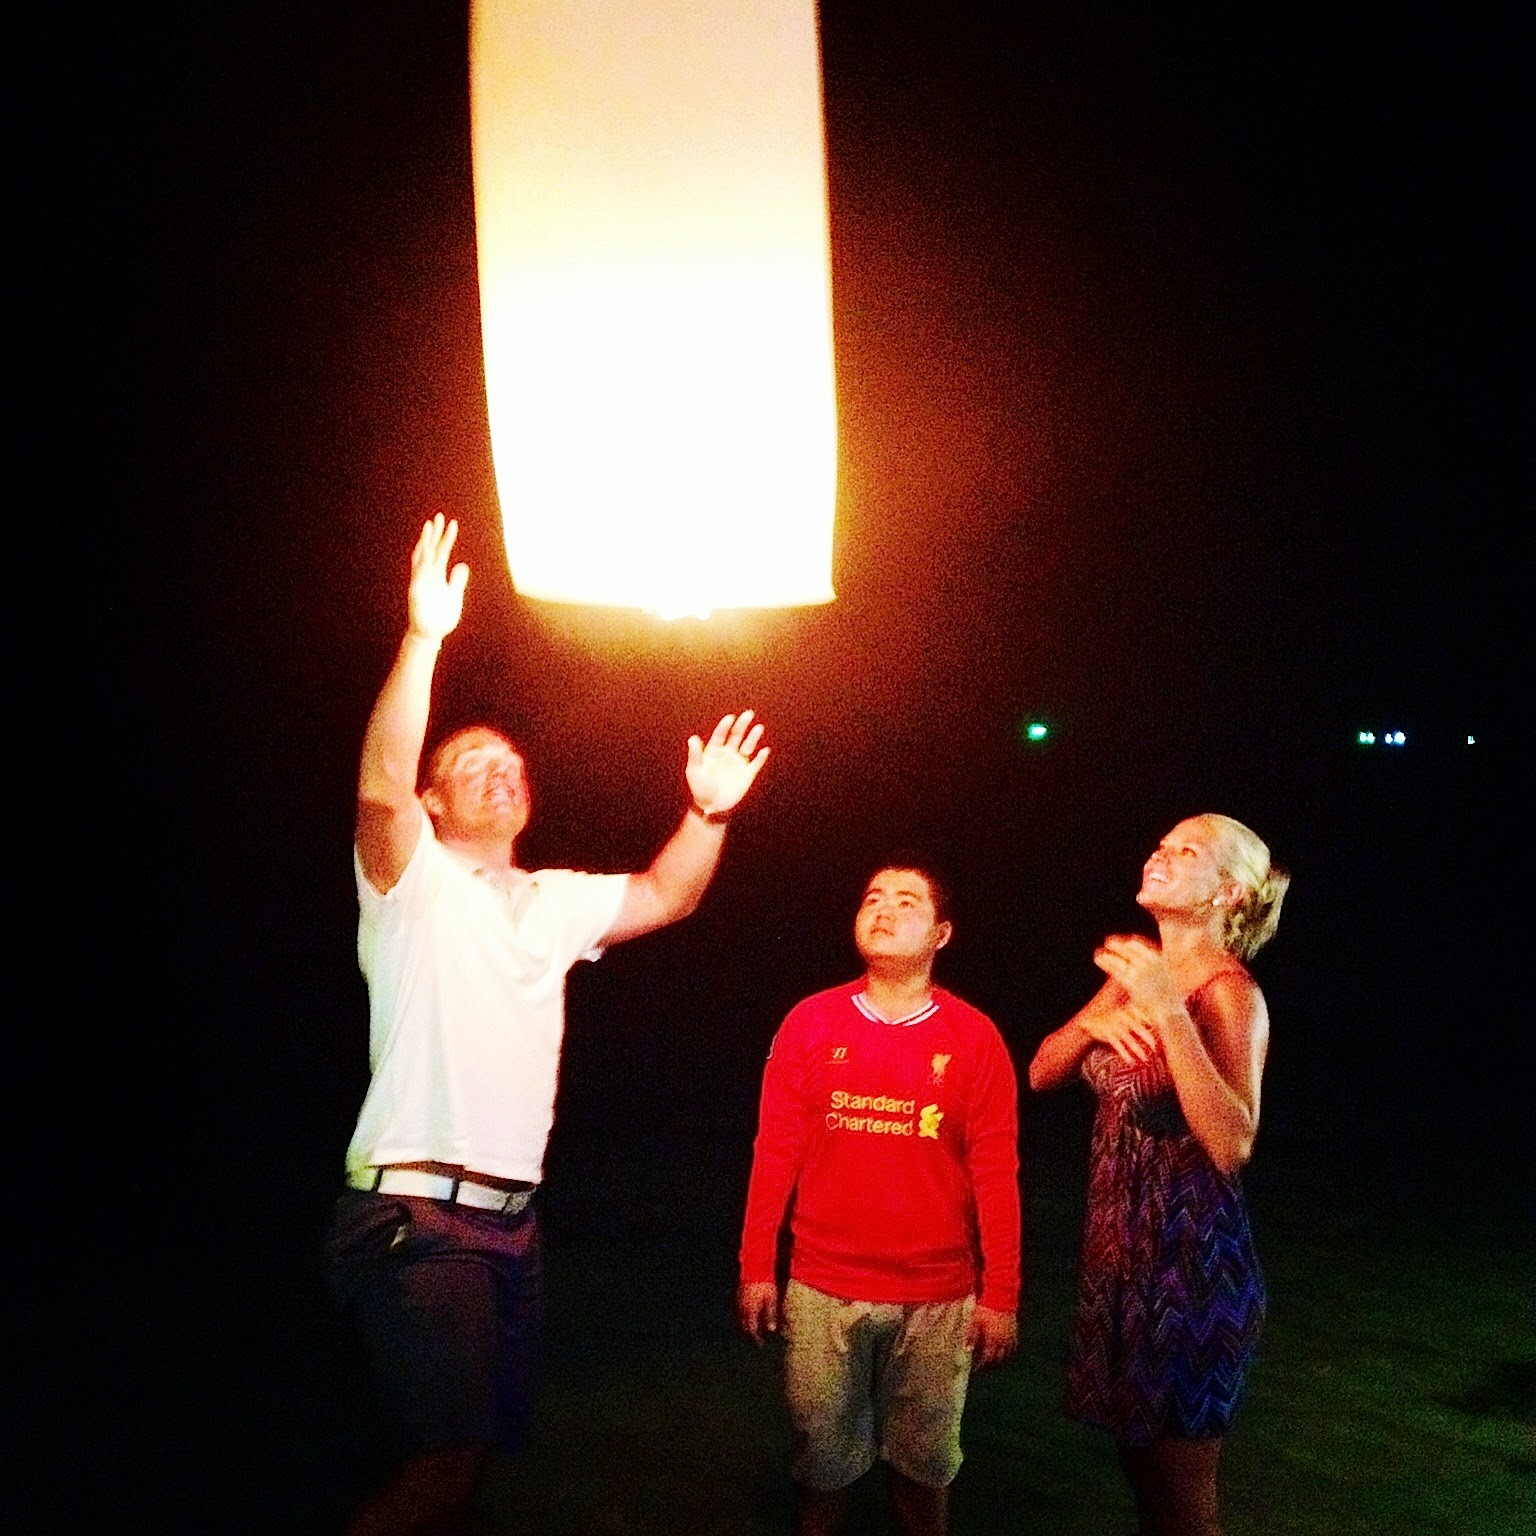 launching our first sky lantern in Koh Samui